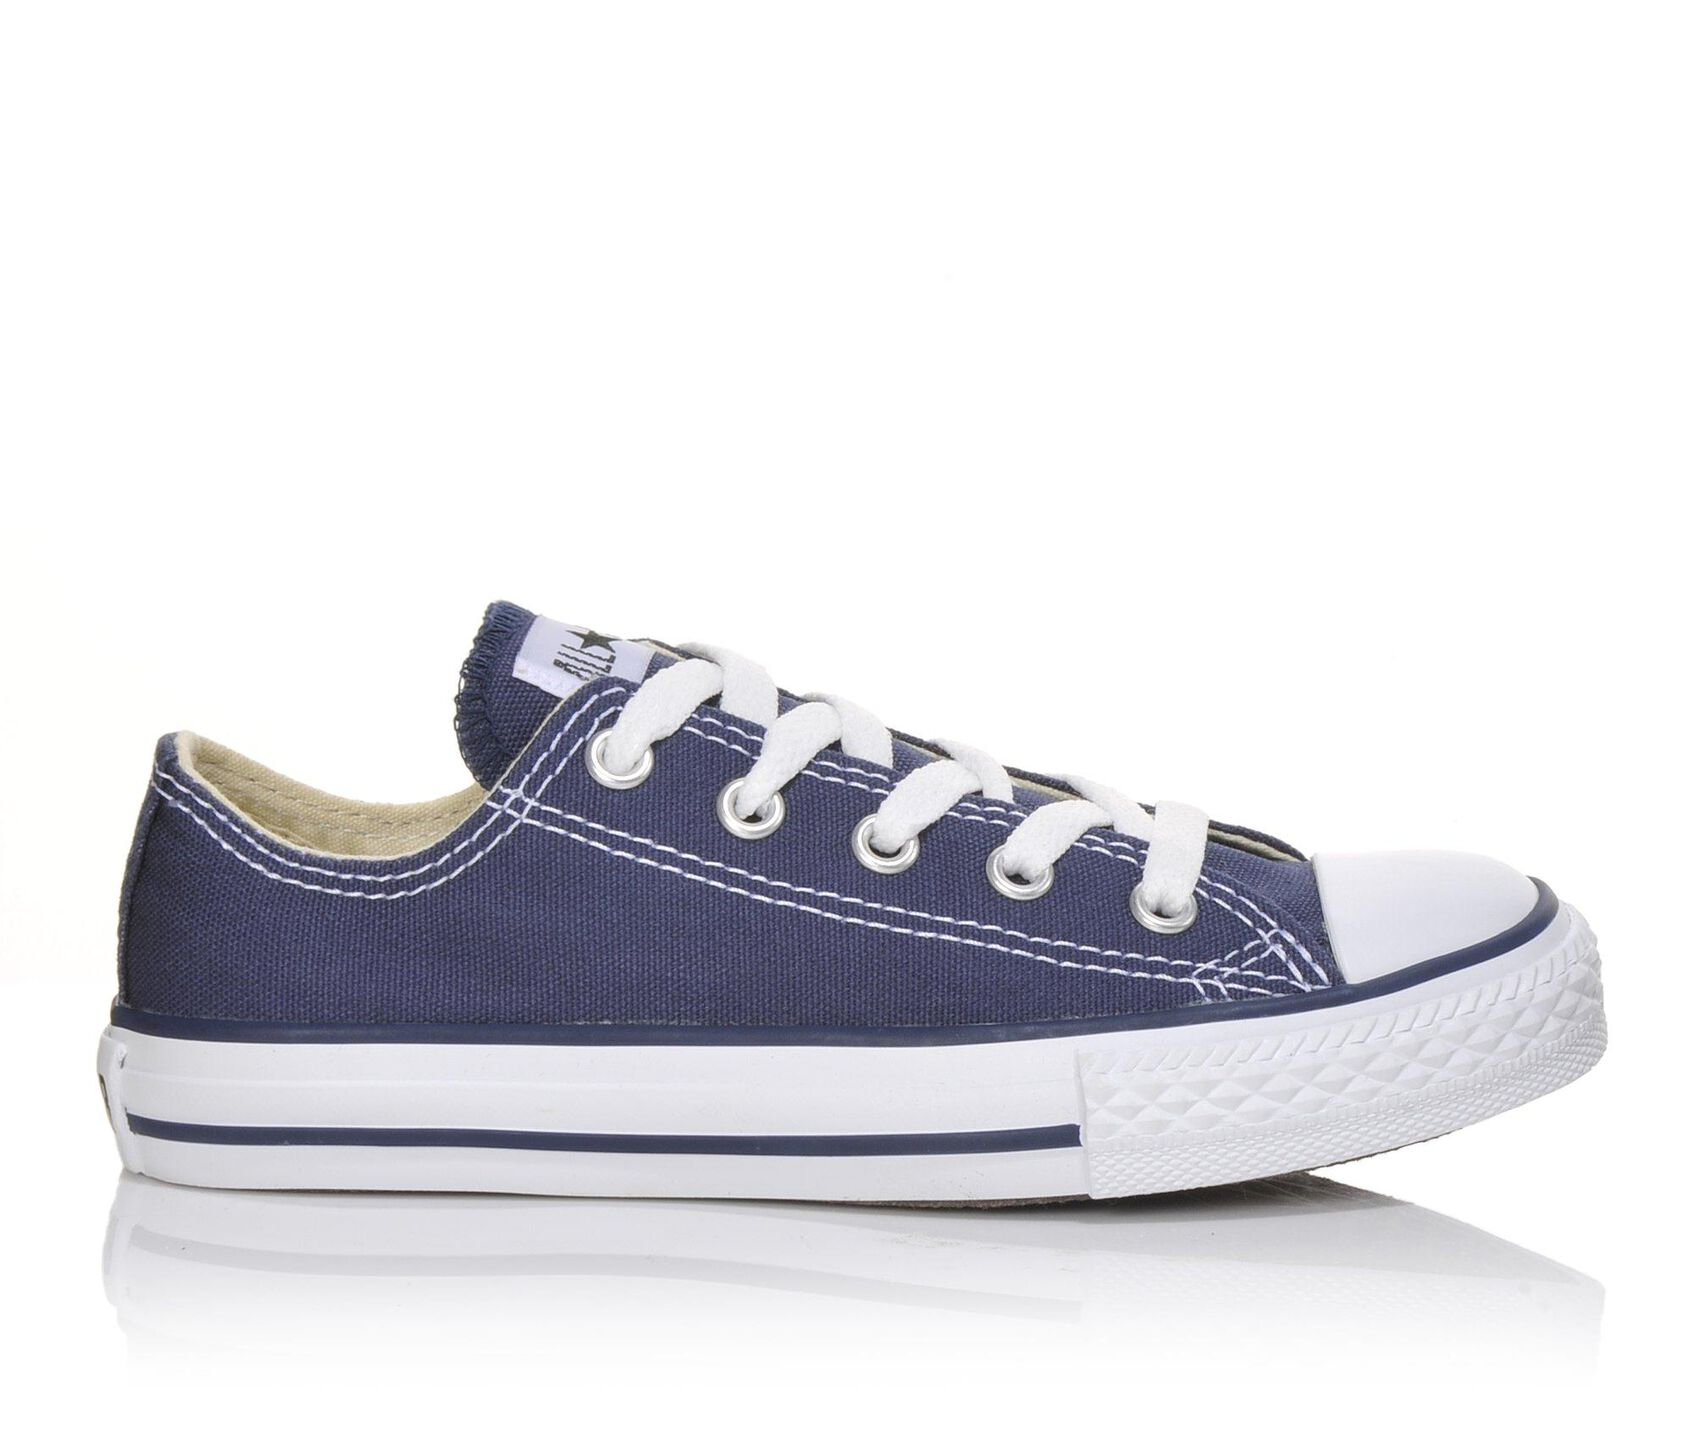 8ac9a261b938 ... Converse Little Kid Chuck Taylor All Star Ox Sneakers. Previous